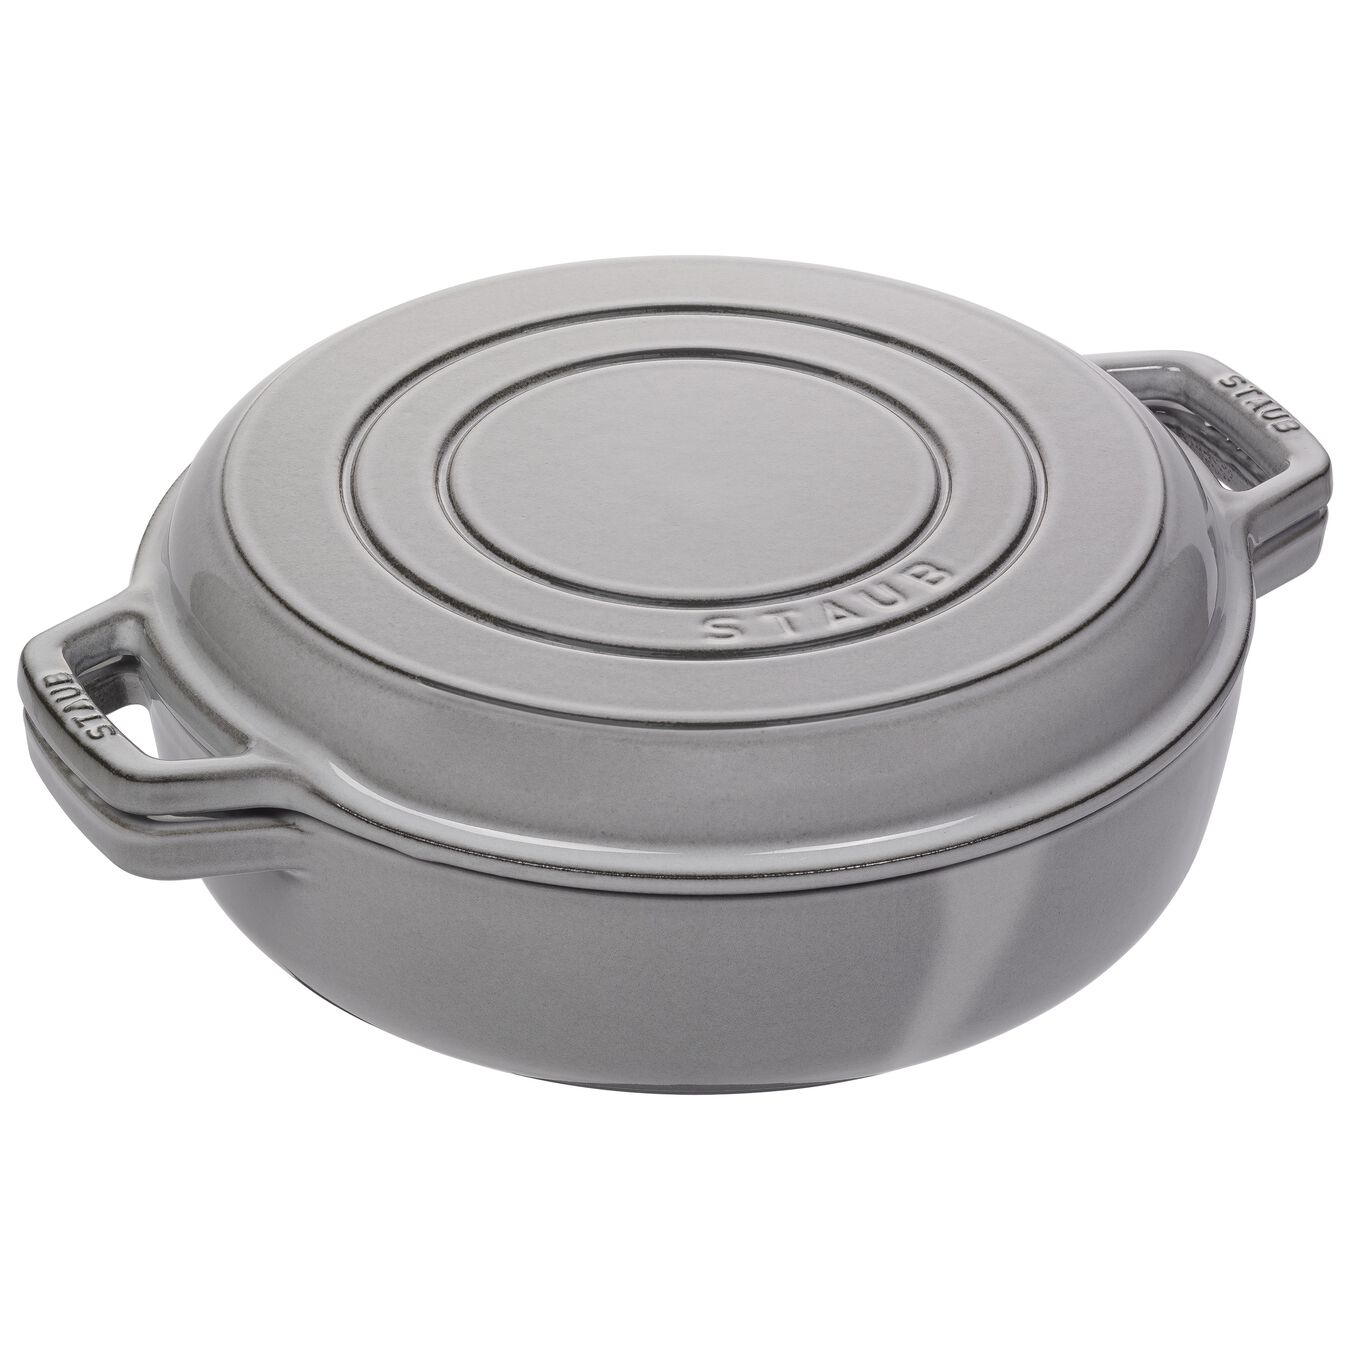 3.5-qt round Braise + Grill, Graphite Grey,,large 1